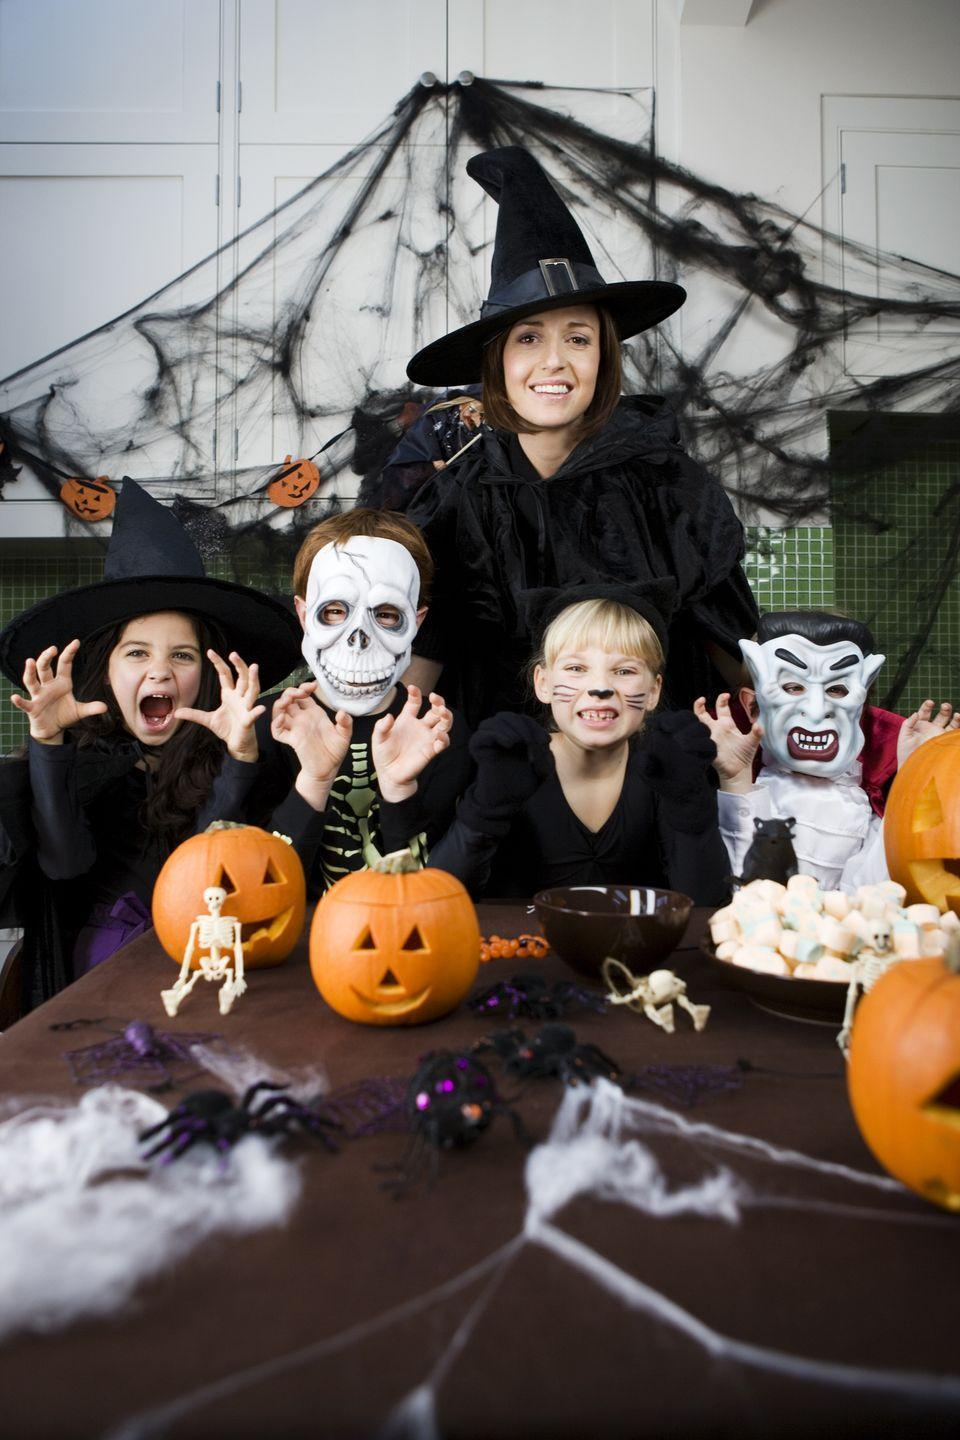 """<p>A classic costume party theme is always a win, for kids and adults alike. Check out some <a href=""""https://www.oprahmag.com/style/g22699089/last-minute-halloween-costume-ideas/"""" rel=""""nofollow noopener"""" target=""""_blank"""" data-ylk=""""slk:last minute ideas here"""" class=""""link rapid-noclick-resp"""">last minute ideas here</a>. </p><p><a class=""""link rapid-noclick-resp"""" href=""""https://www.amazon.com/Moon-Boat-Bloody-Halloween-Window/dp/B074W359RN?tag=syn-yahoo-20&ascsubtag=%5Bartid%7C10072.g.28787574%5Bsrc%7Cyahoo-us"""" rel=""""nofollow noopener"""" target=""""_blank"""" data-ylk=""""slk:SHOP HALLOWEEN DECORATIONS"""">SHOP HALLOWEEN DECORATIONS</a><br></p>"""